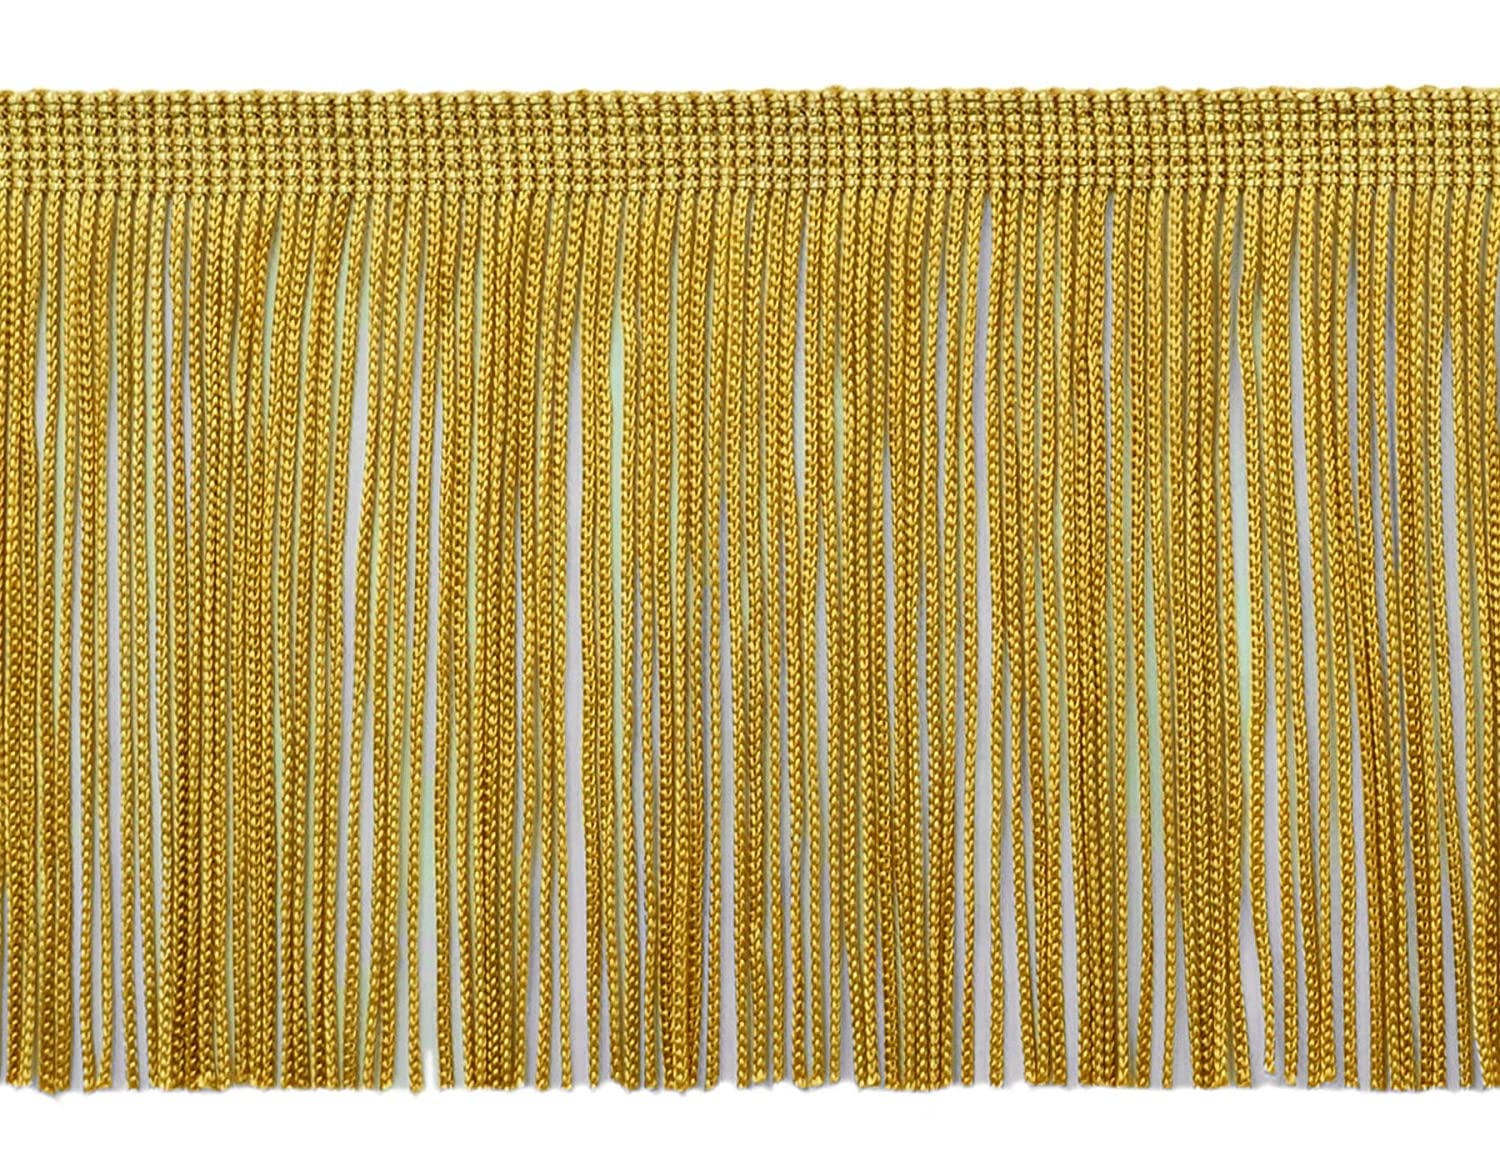 DecoPro 9 Yard Value Pack of 4 Inch Long Chainette Fringe Trim, Style# CF04 Color: Old Gold -D05 (27 Feet / 8.2M)